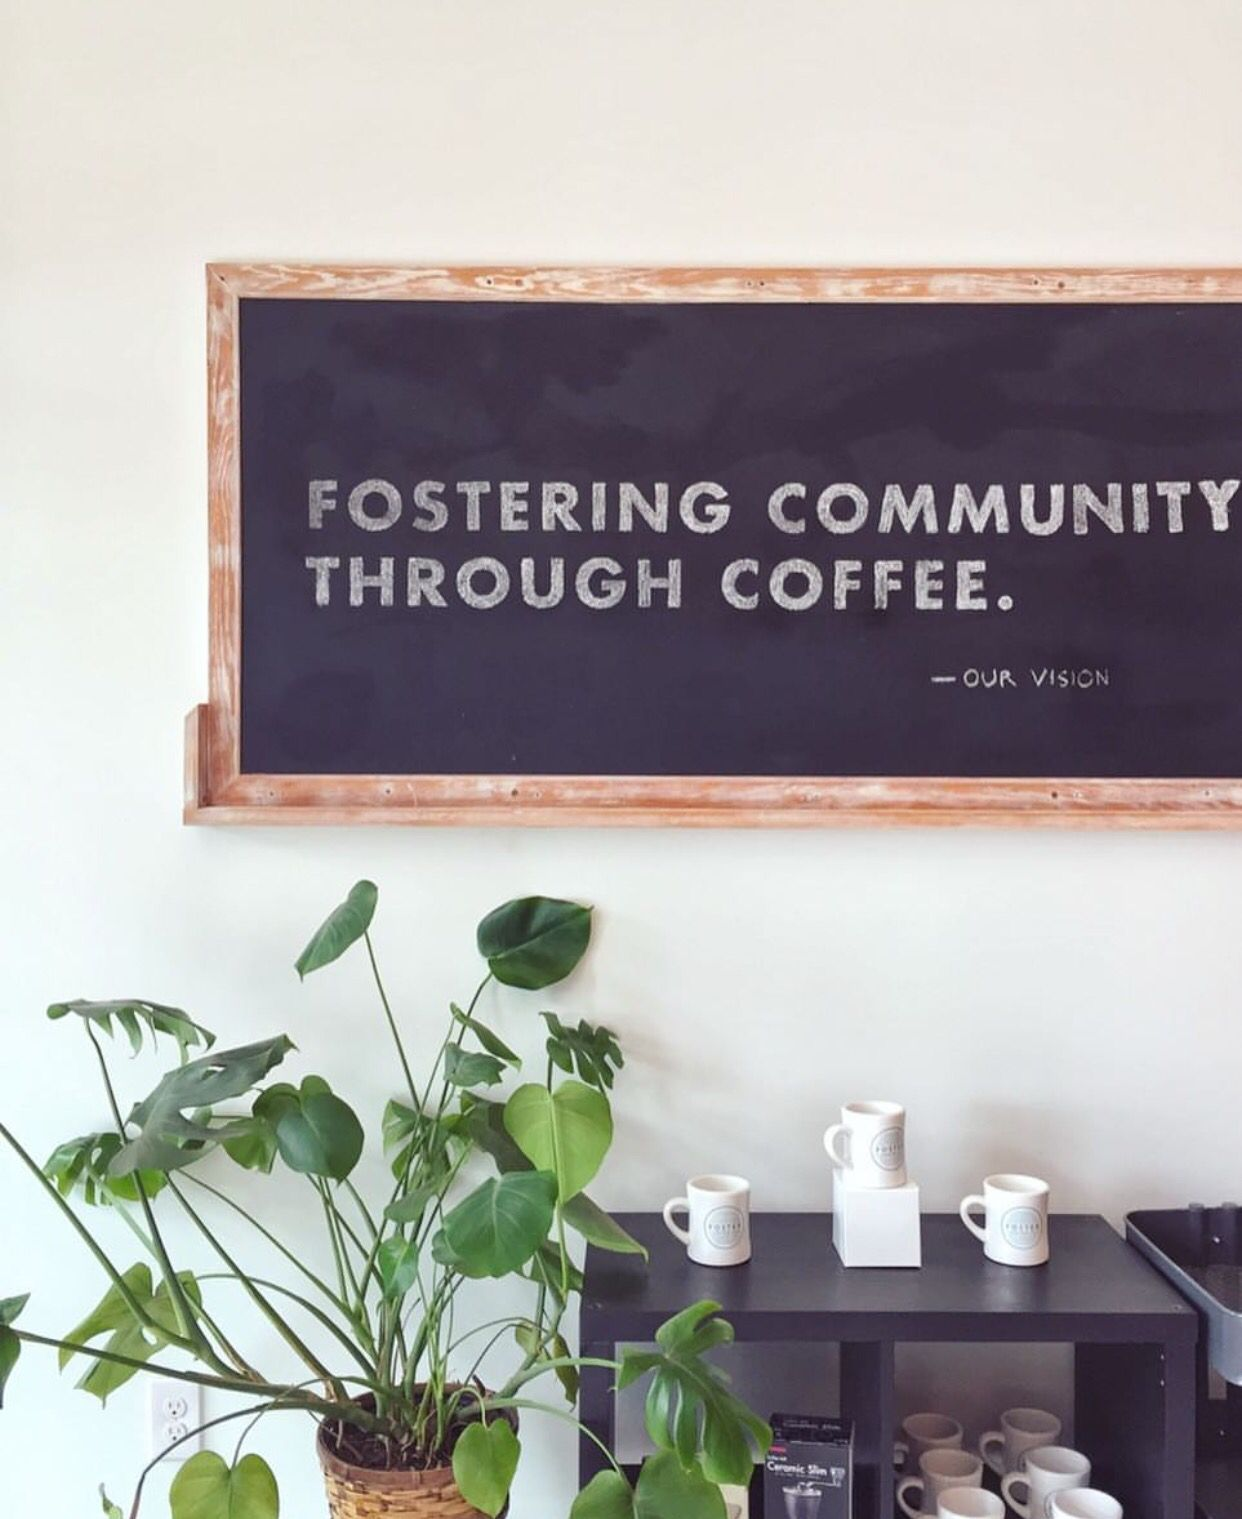 Our vision. Photo: @jenennap #fostercoffeeco | The fosters, Coffee company, Coffee